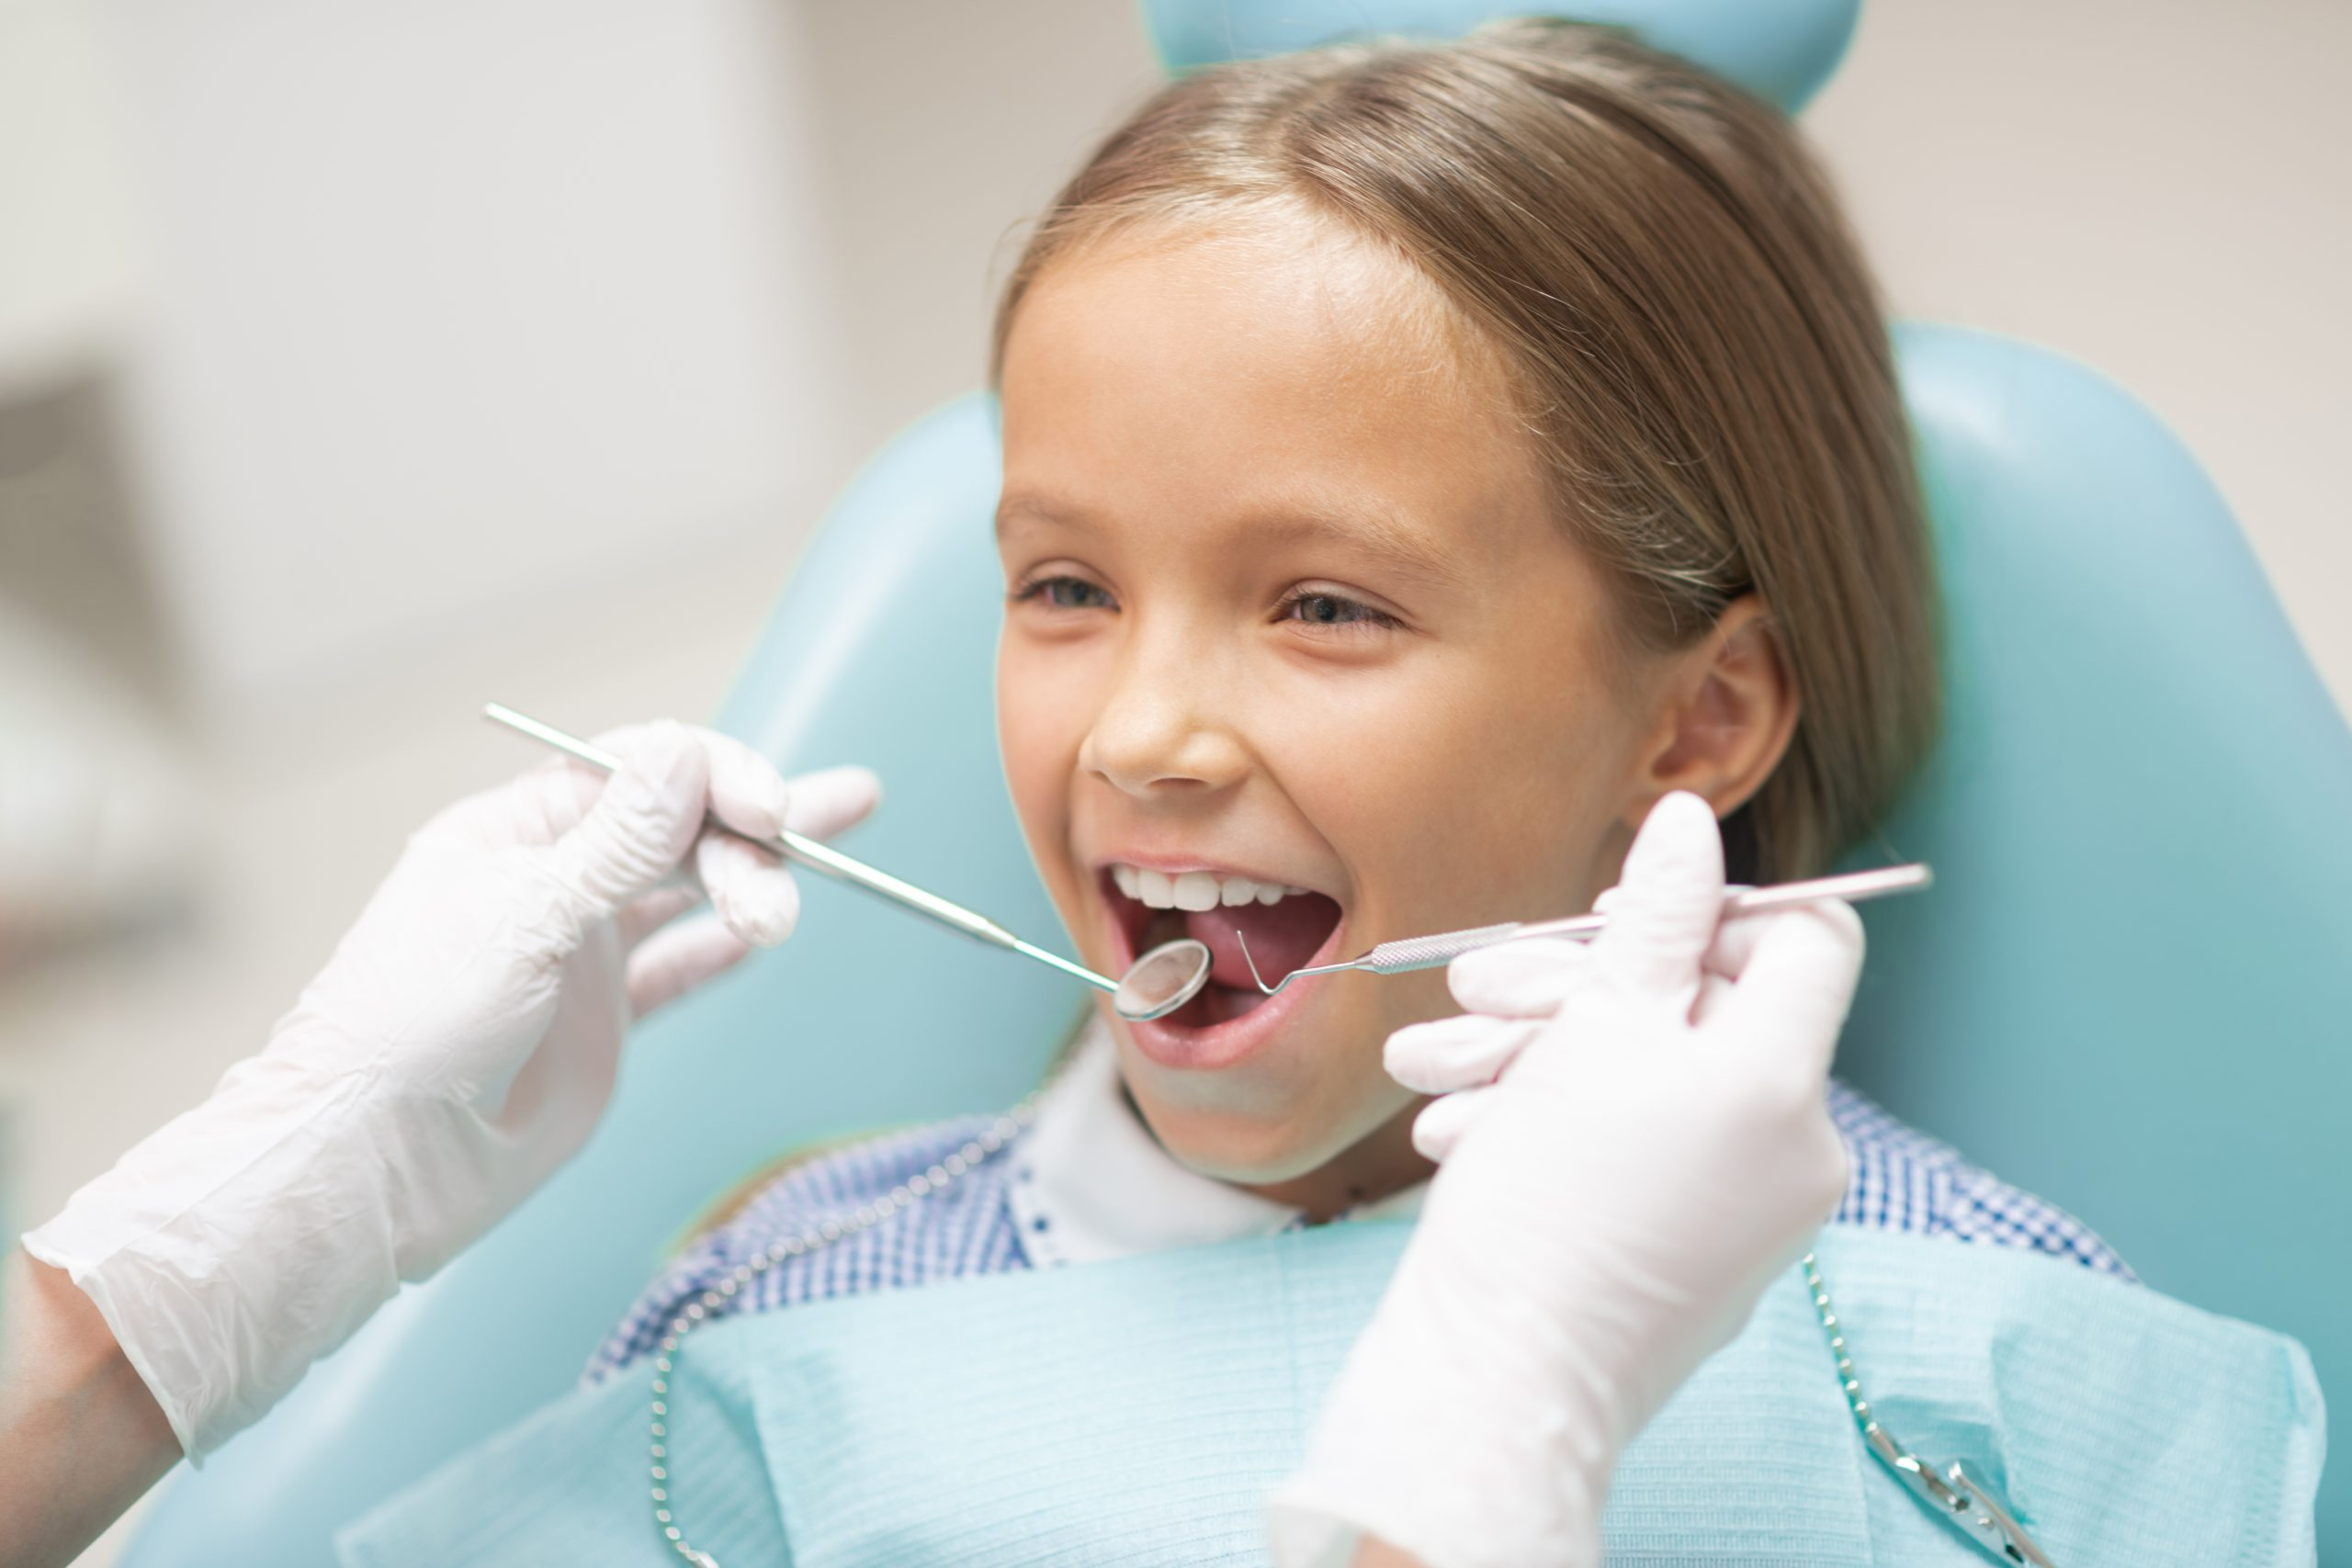 A little girl gets pre-orthodontic treatment